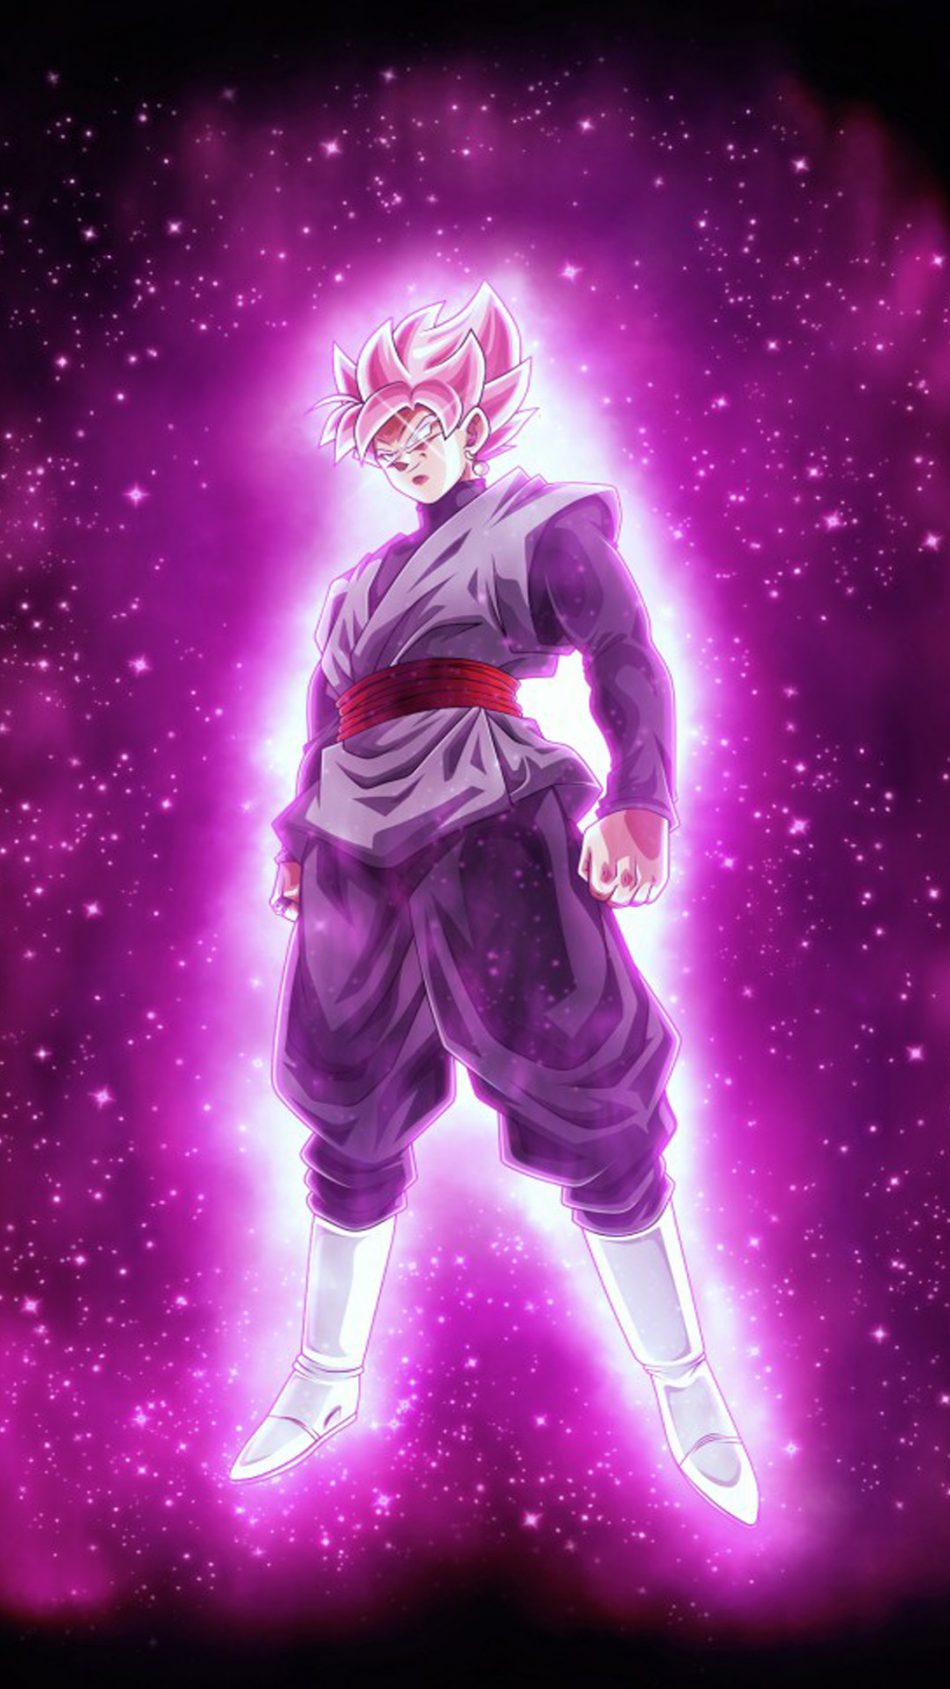 Super Saiyan Rose In Dragon Ball Super HD Mobile Wallpaper